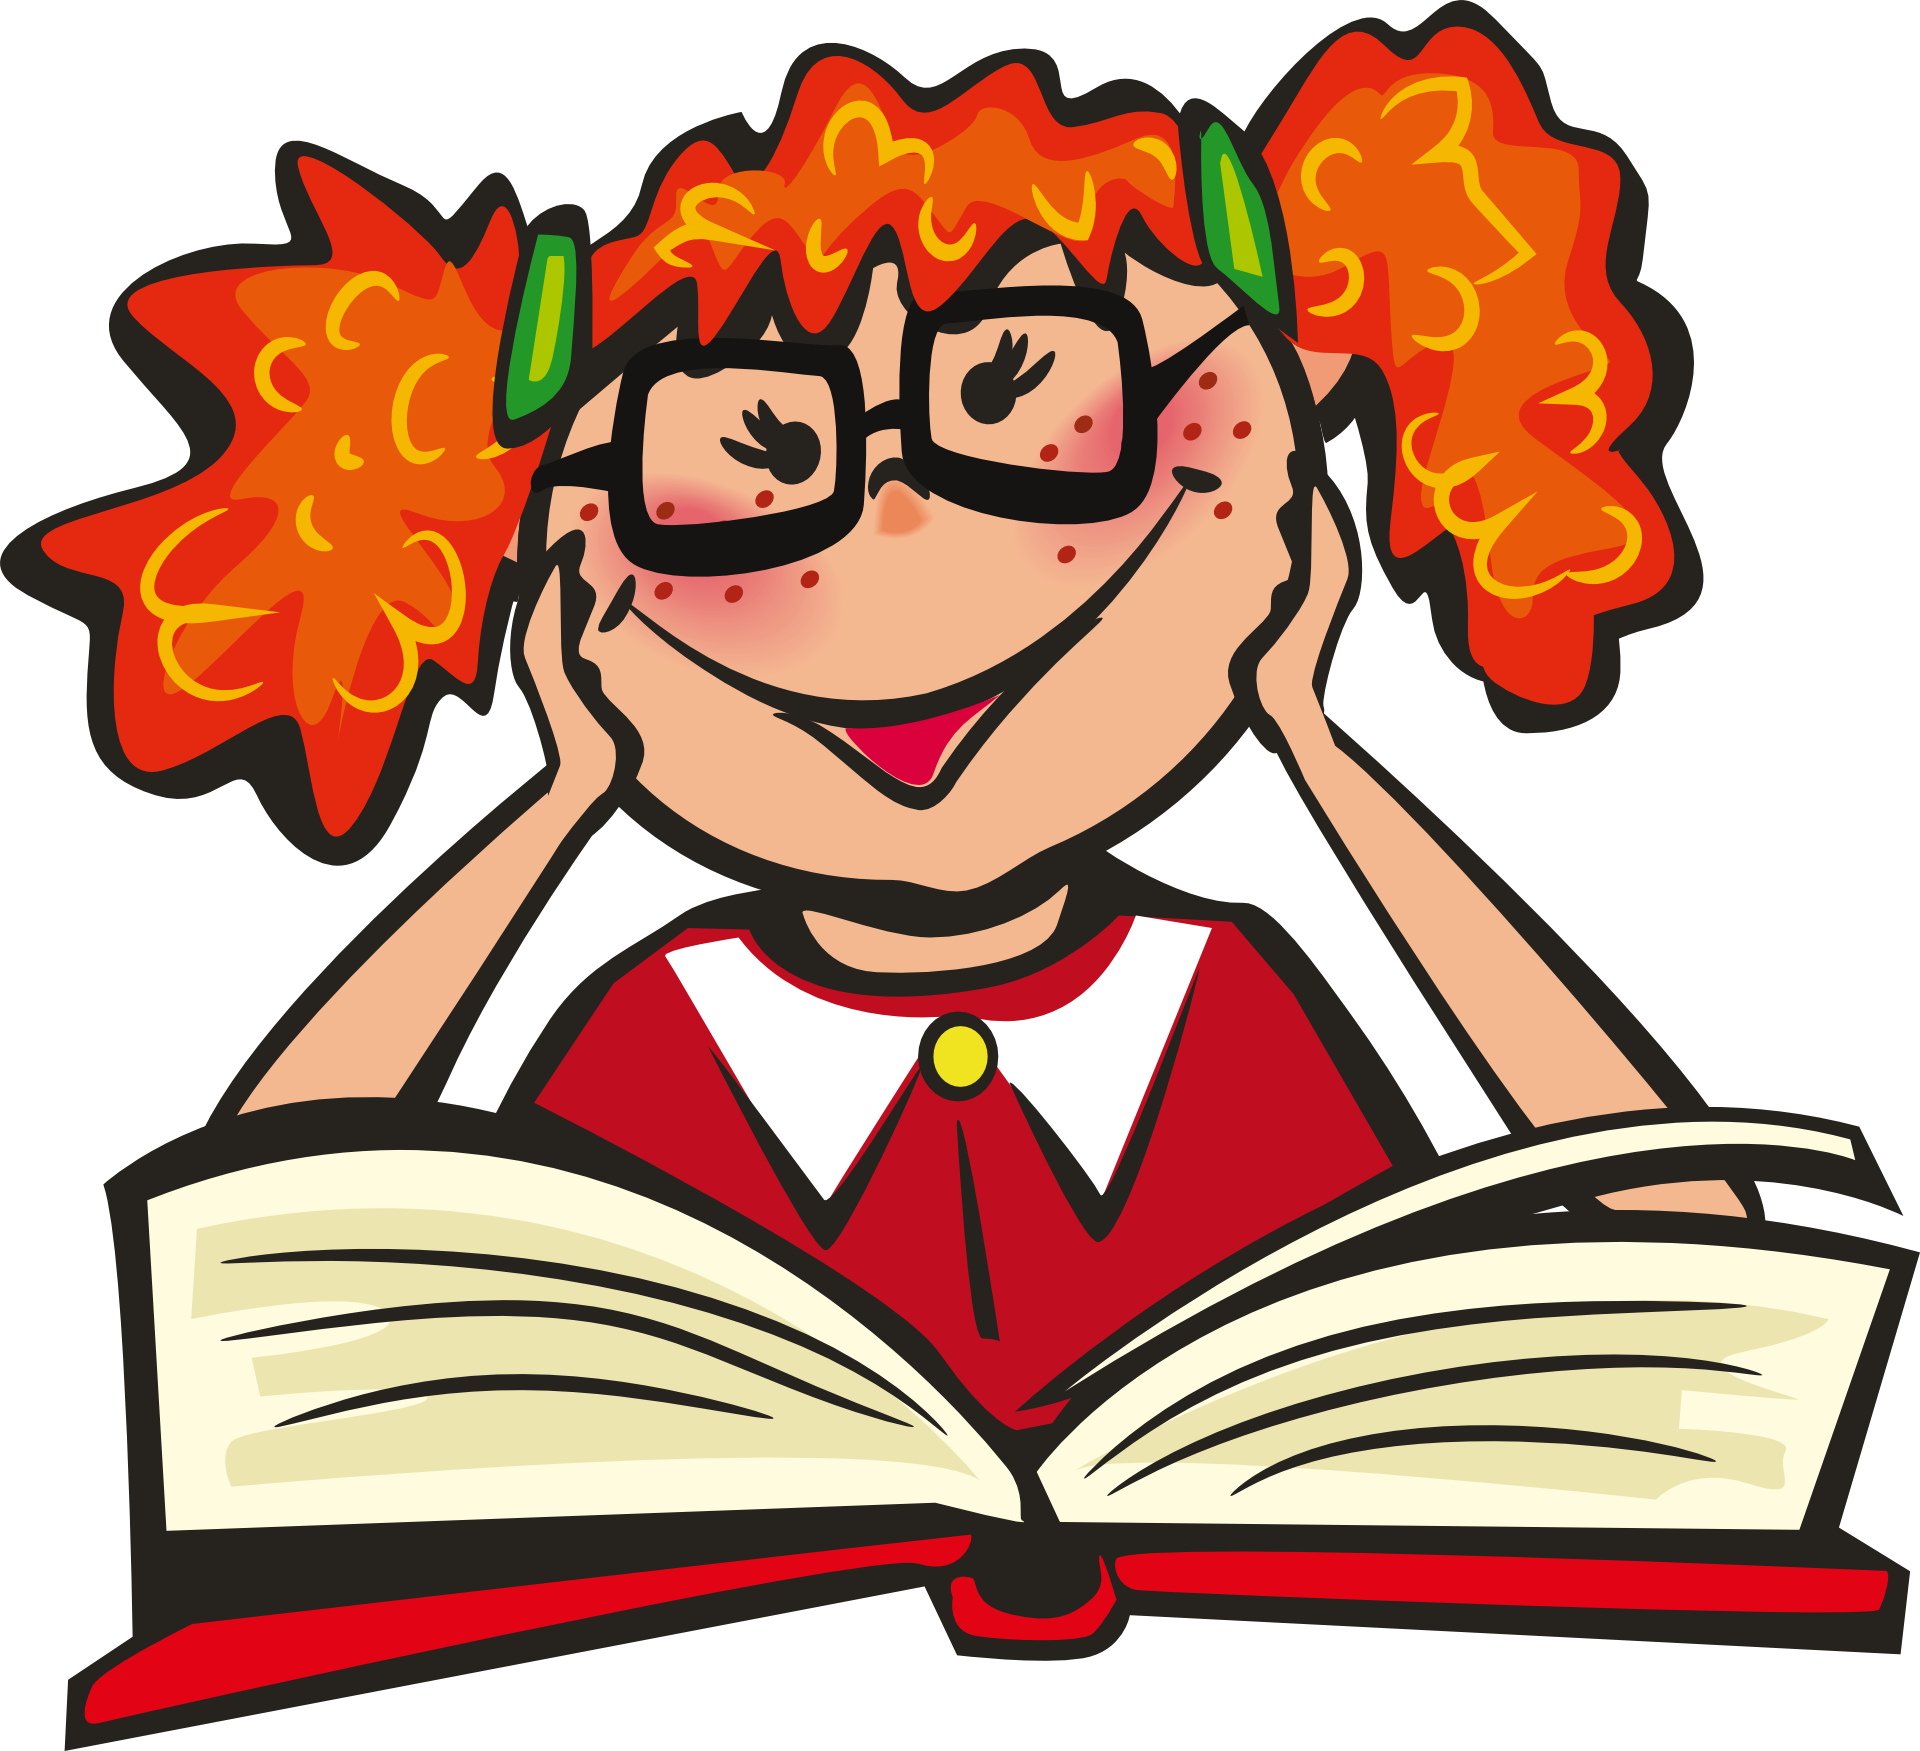 Clipart reading happy reading, Clipart reading happy reading ...